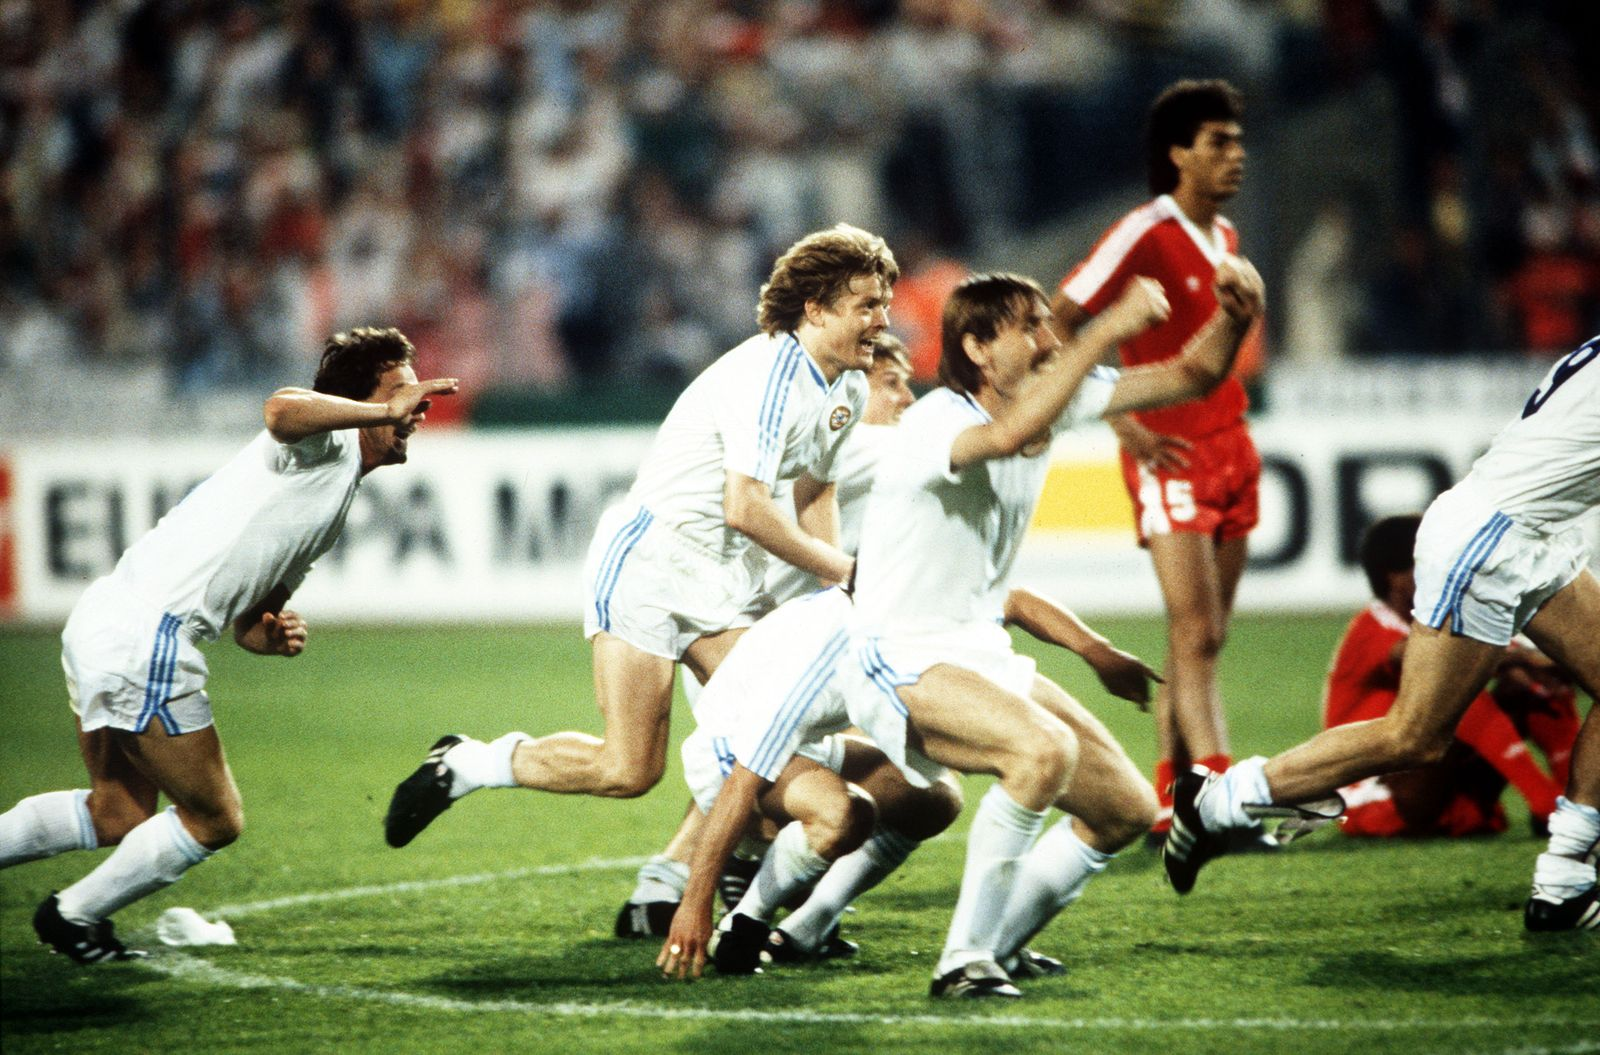 Football. European Cup Final. Stuttgart, West Germany. 25th May 1988. Benfica 0 v PSV Eindhoven 0 (after extra time, PSV win 6-5 on penalties). PSV players celebrate after Hans Van Breukelen saved the vital penalty in the shoot-out.